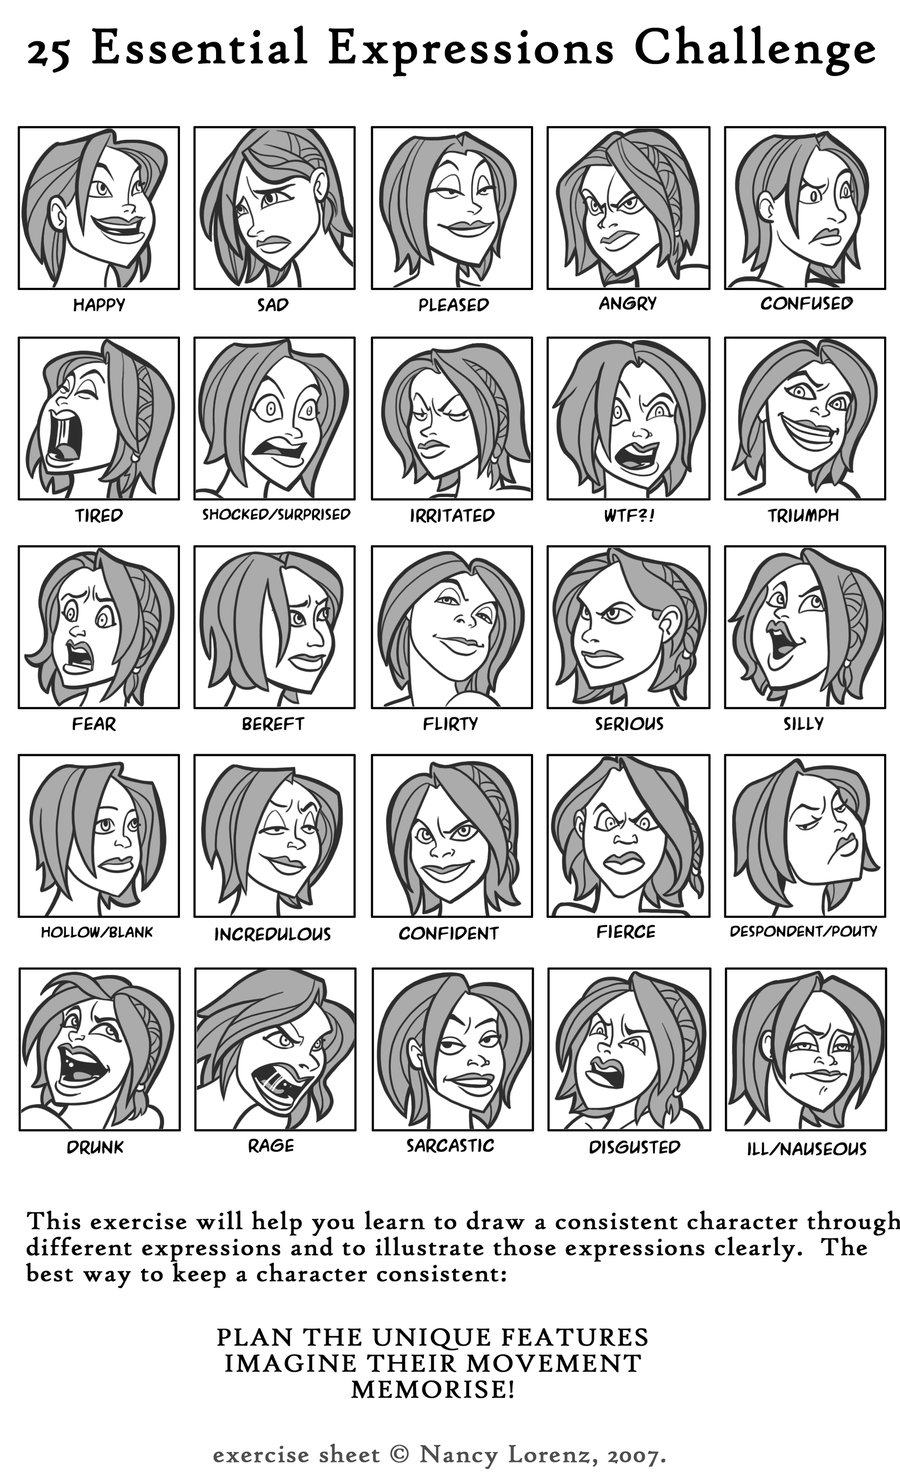 Examples of facial expressions advise